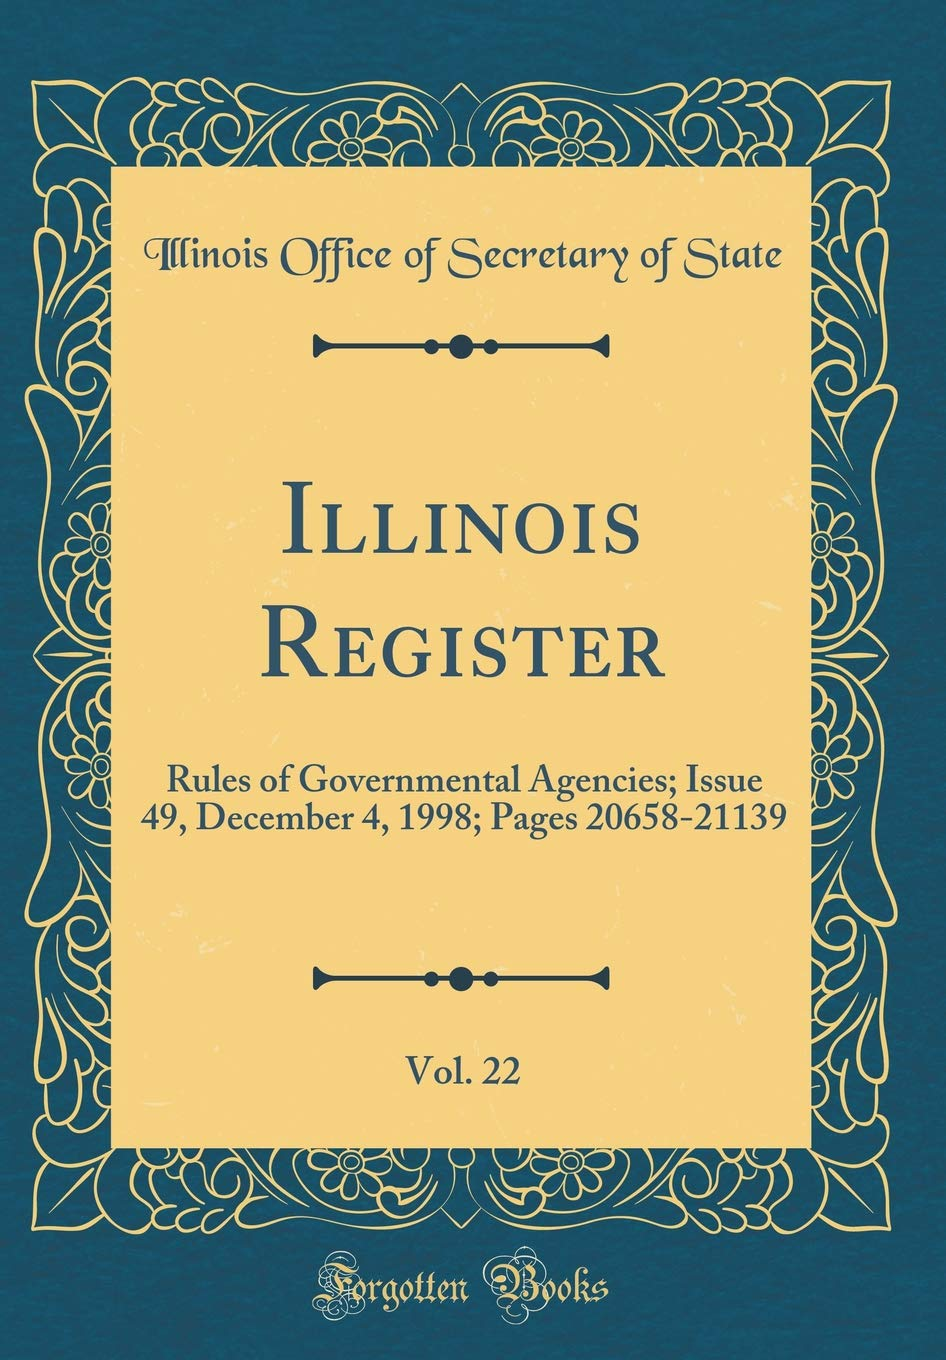 Illinois Register, Vol. 22: Rules of Governmental Agencies; Issue 49, December 4, 1998; Pages 20658-21139 (Classic Reprint) pdf epub